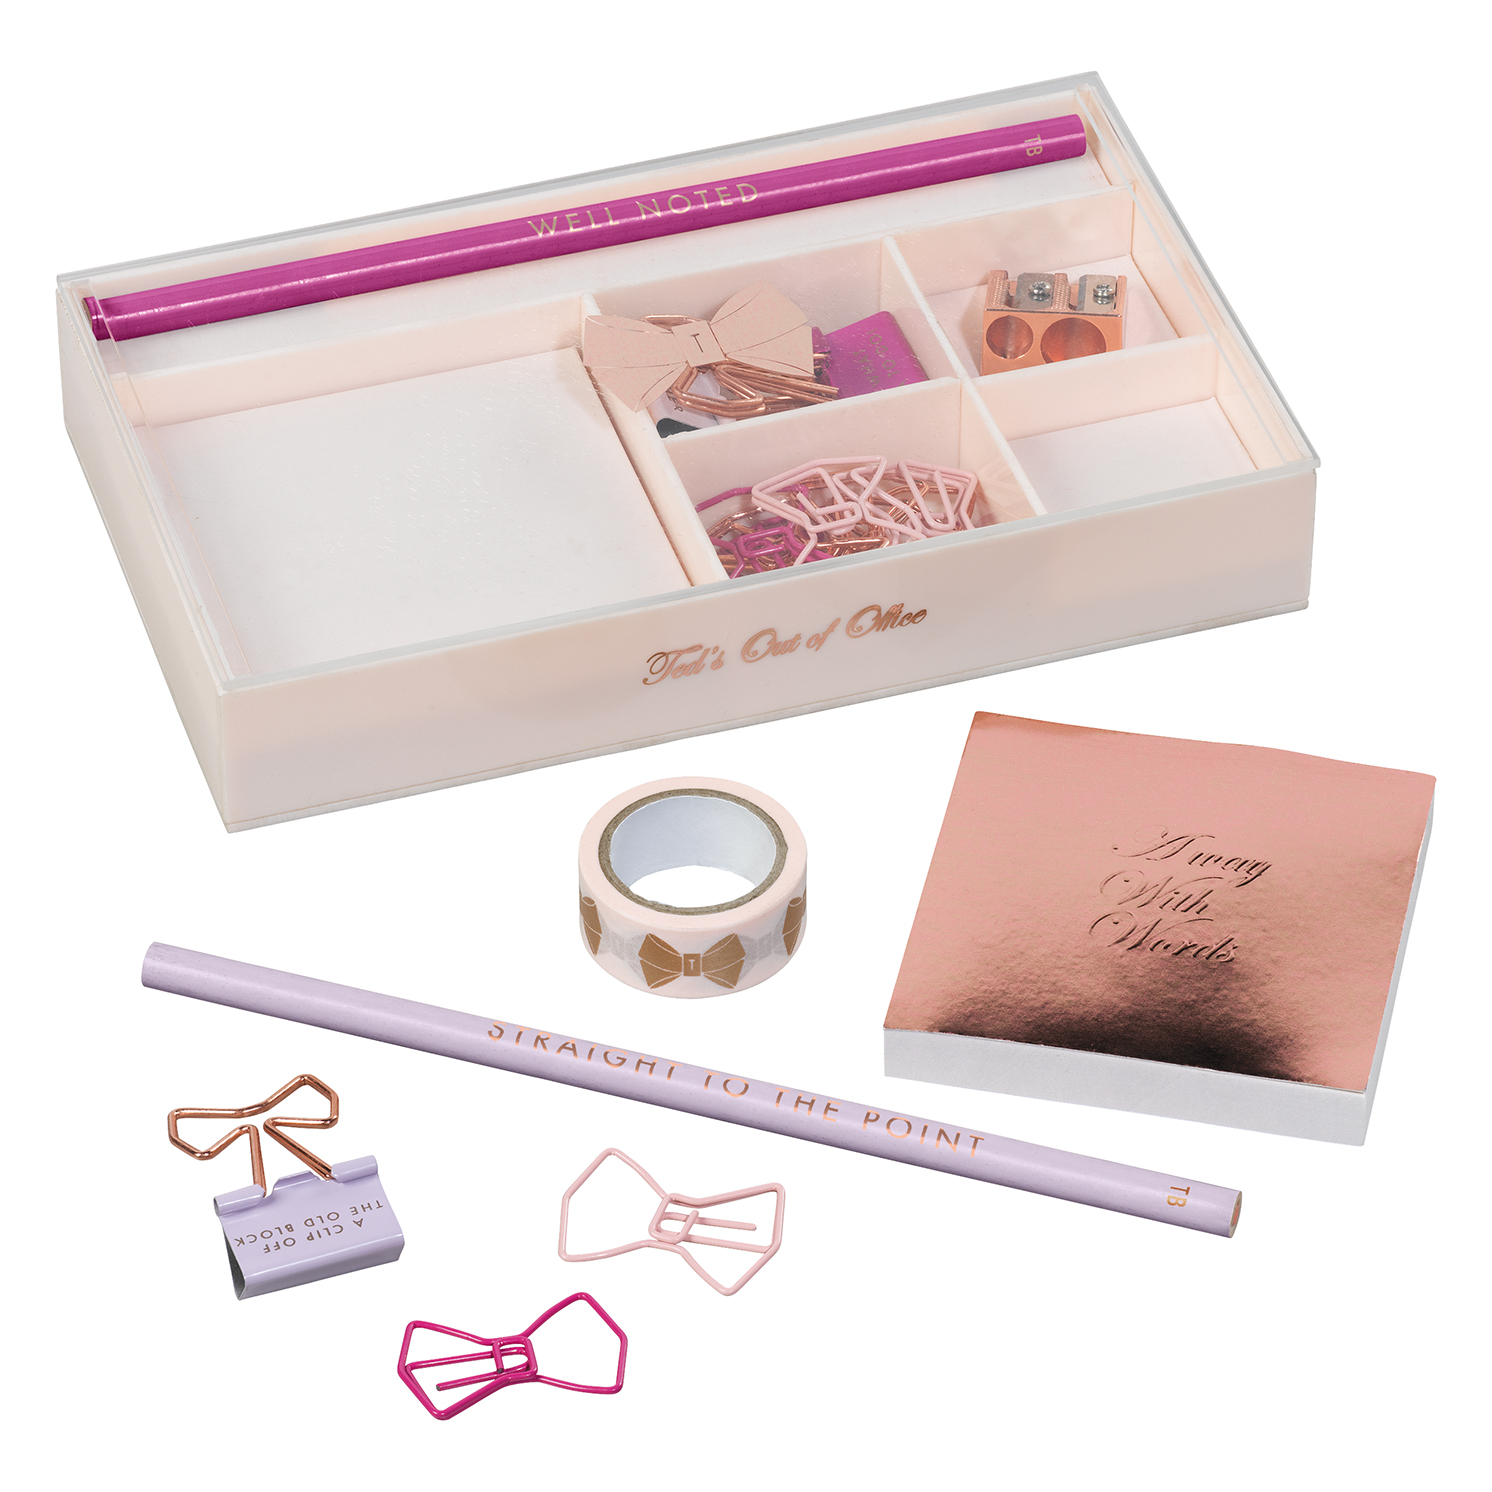 Ted Baker – Teds Out of Office Porcelain Rose Stationery Set in Gift Box